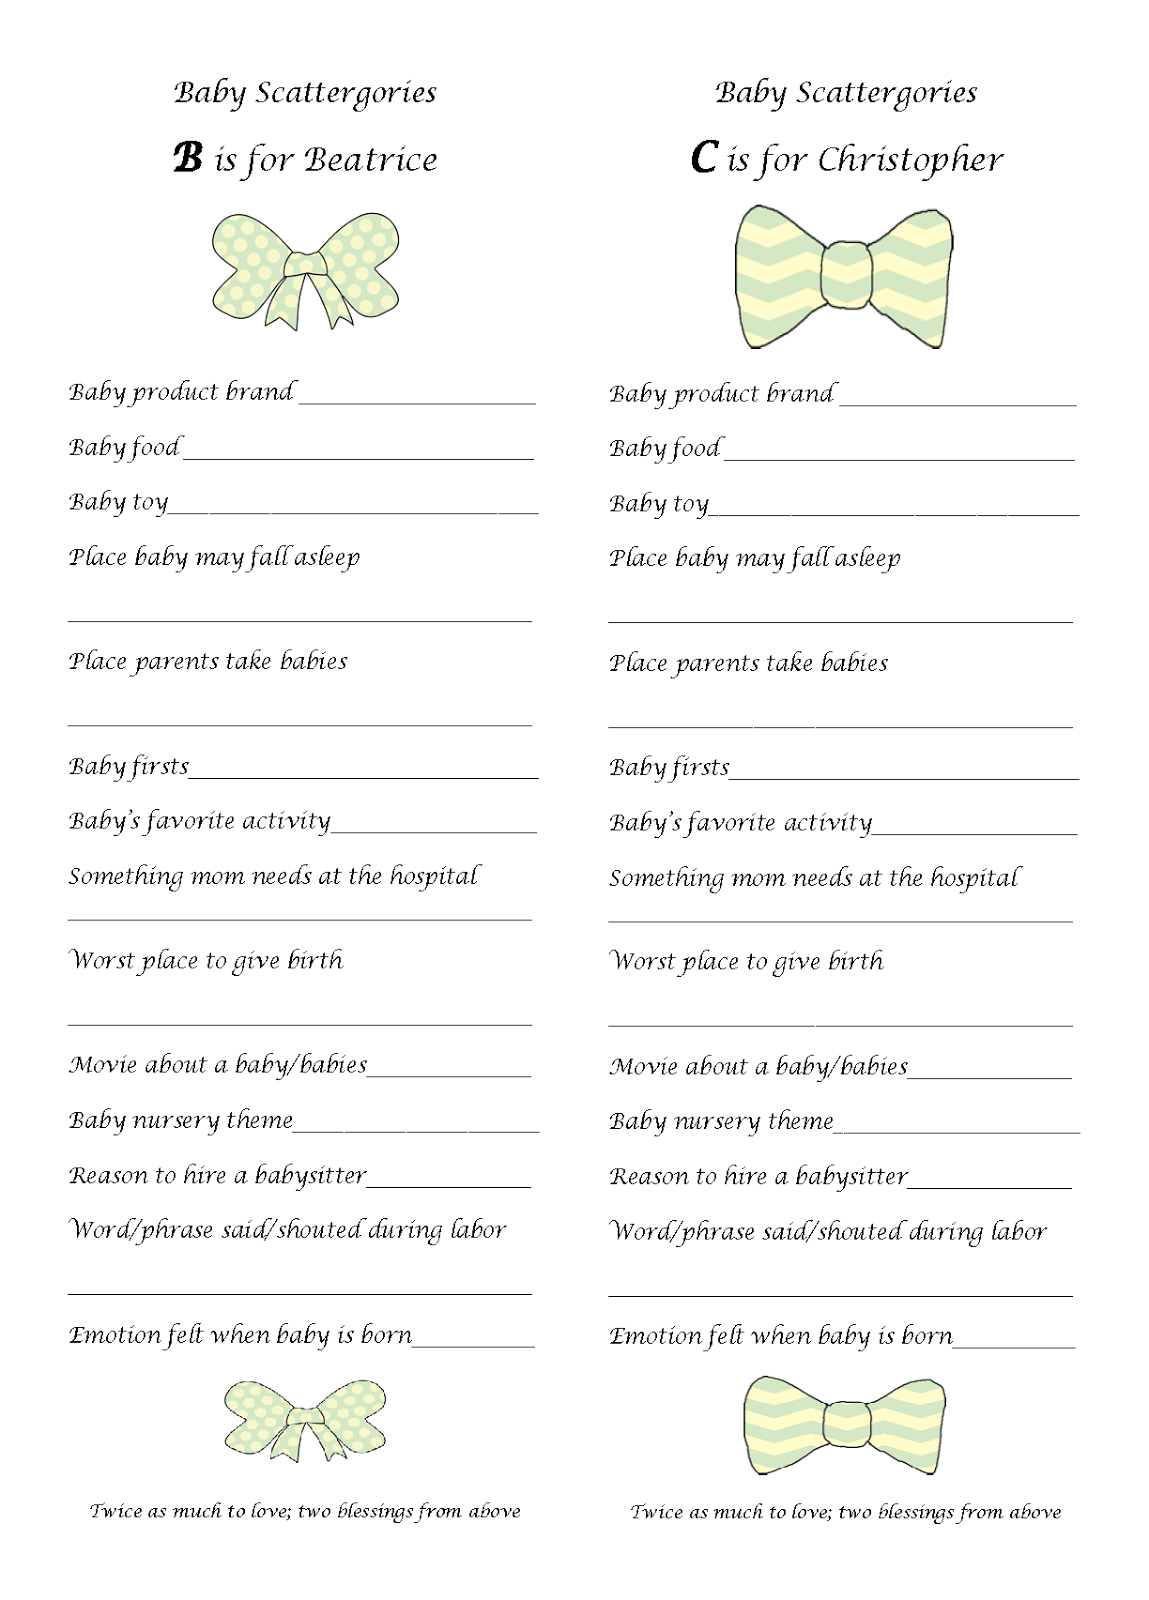 Worksheets Baby Shower Games Printable Worksheets bows bow ties shower the games baby babyshower scattergories game free printable babyshower